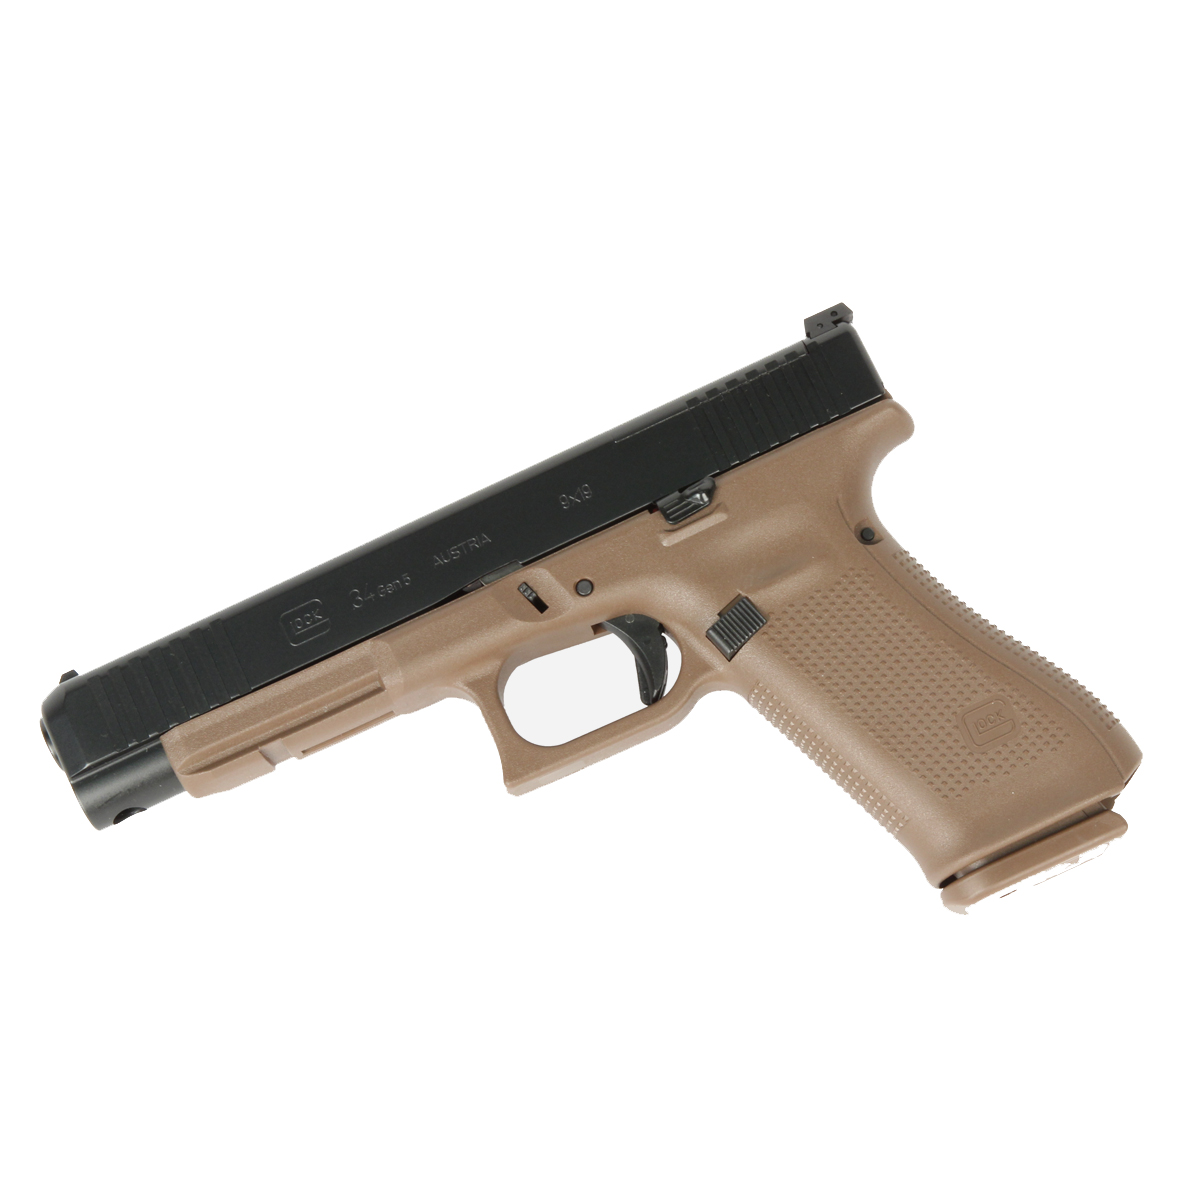 Glock 34 GEN 5 MOS 9mm - Flat Dark Earth - Front Serrations